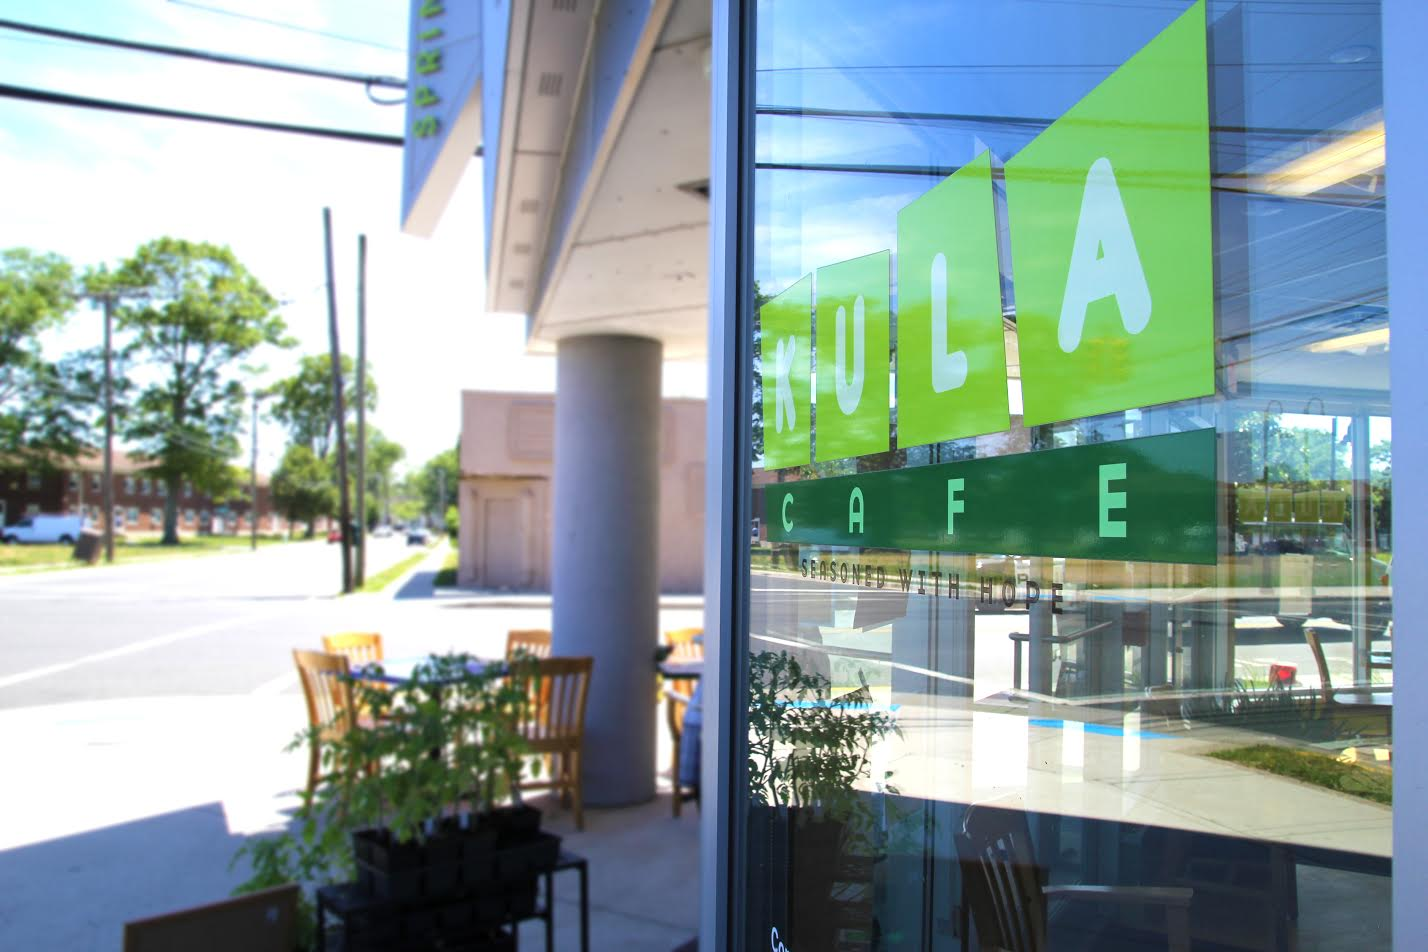 Kula Cafe Occupies Part Of The Springwood Center's First Floor And Serves Food Sourced From Kula Urban Farm